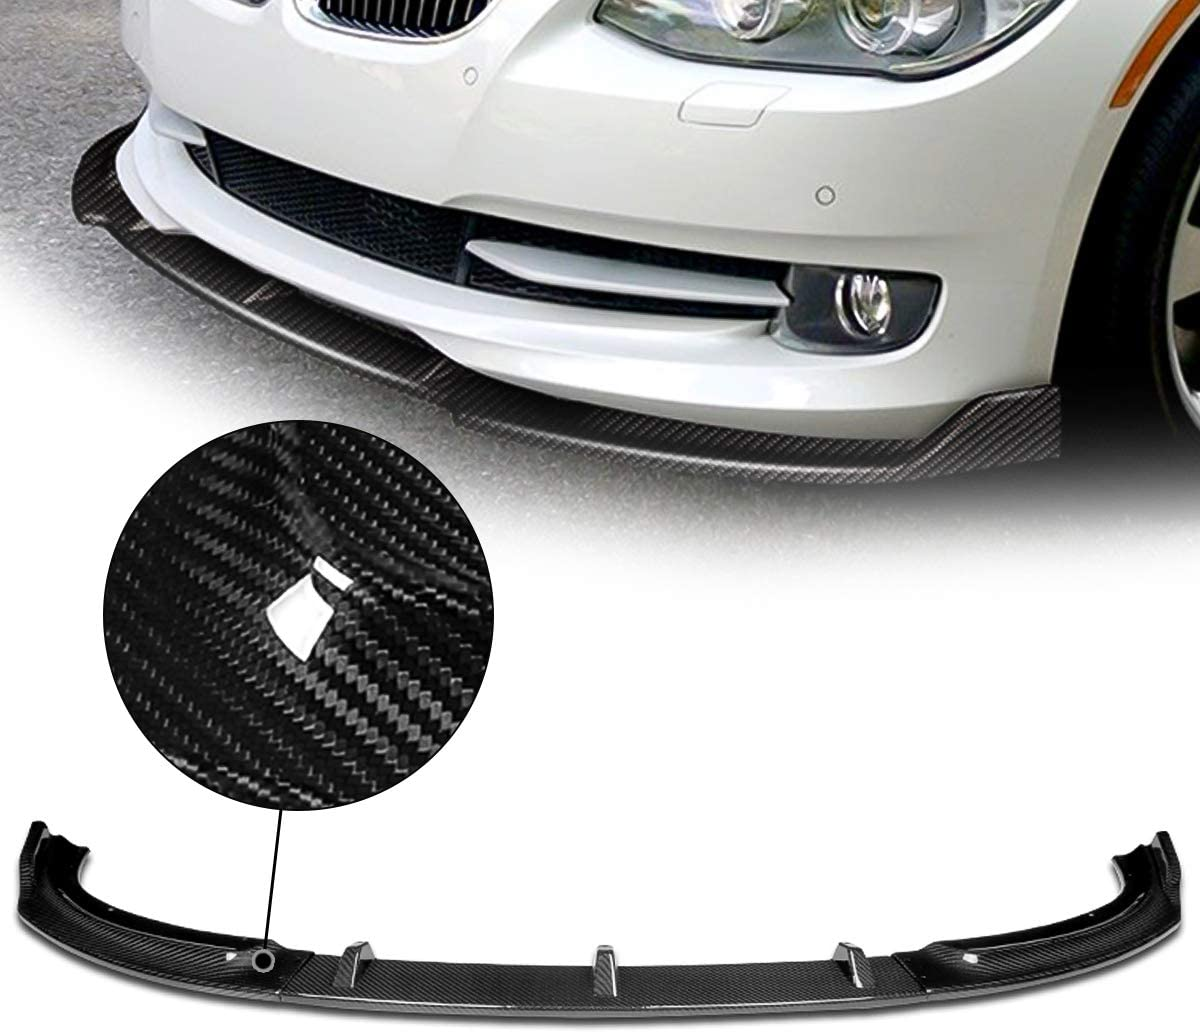 Popular product DNA Motoring 2-PU-676-R-RCF Resin Product Carbon Fiber Front With Vertic